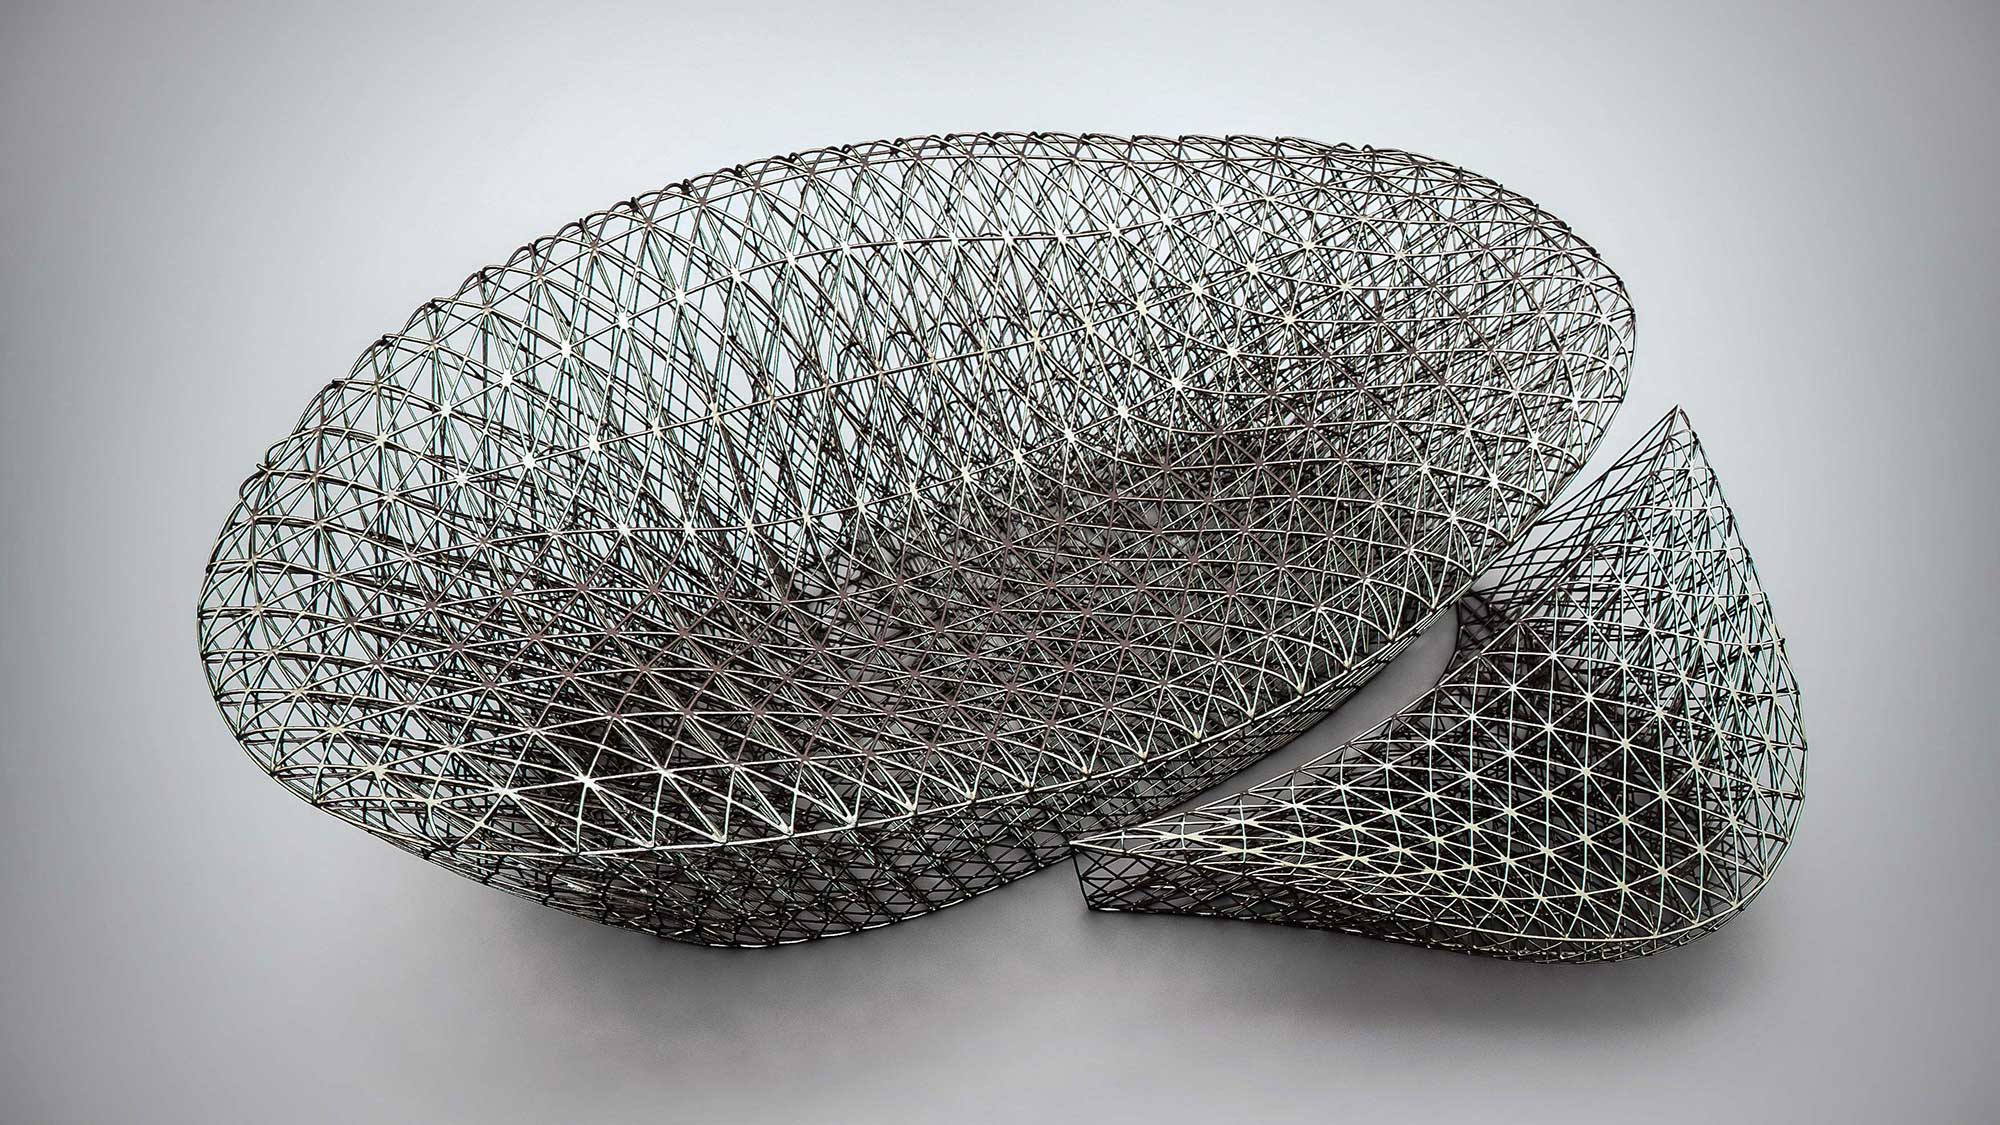 Sofa so good is finnish janne kyttanen 39 s latest 3d printed for 3d printer layouts